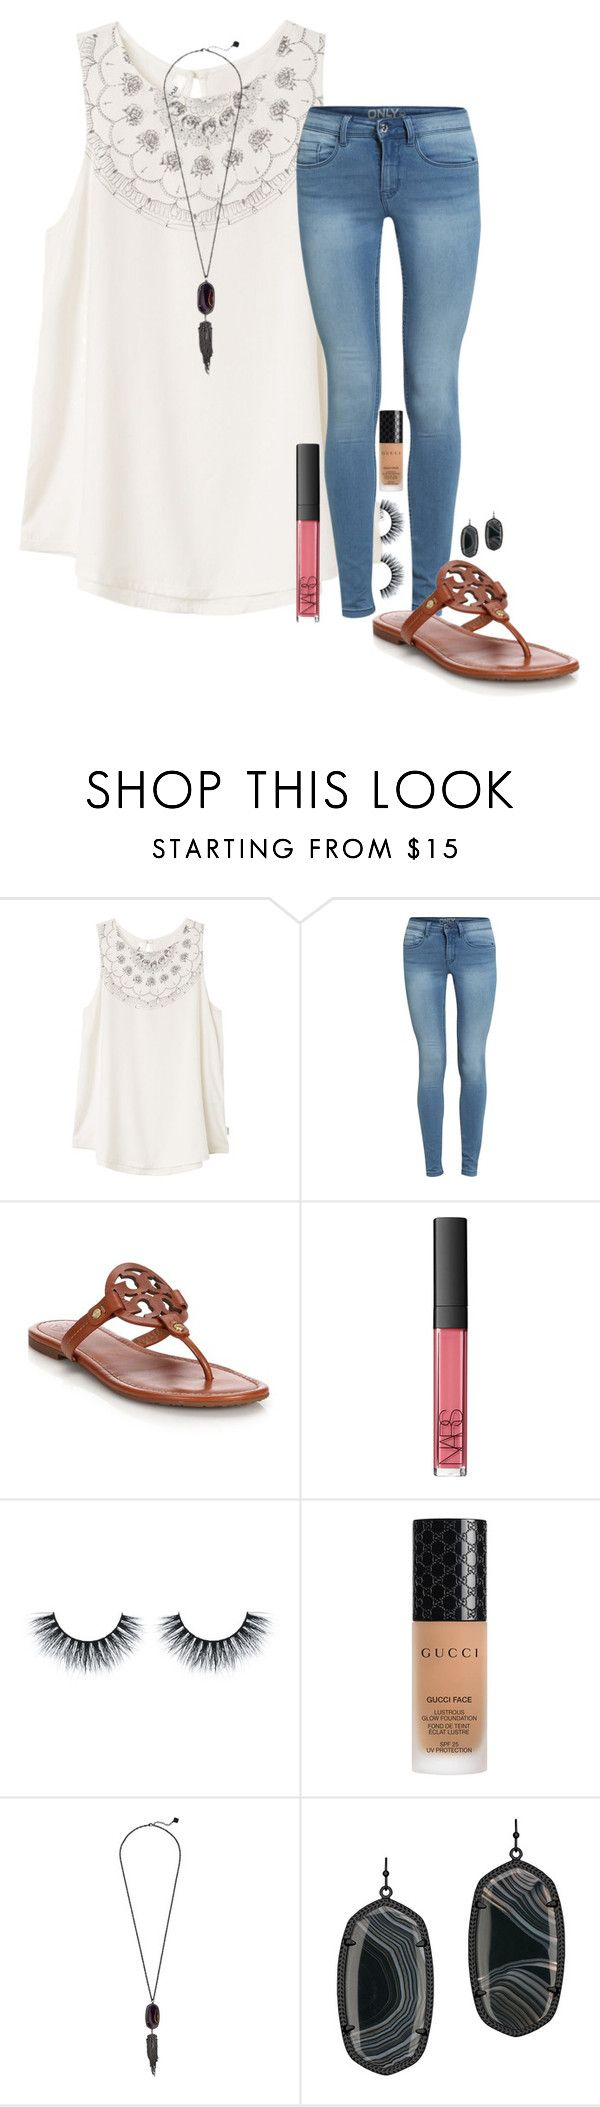 """""""less then 10 days left!!!"""" by madeleineds ❤ liked on Polyvore featuring RVCA, Tory Burch, NARS Cosmetics, Gucci and Kendra Scott"""